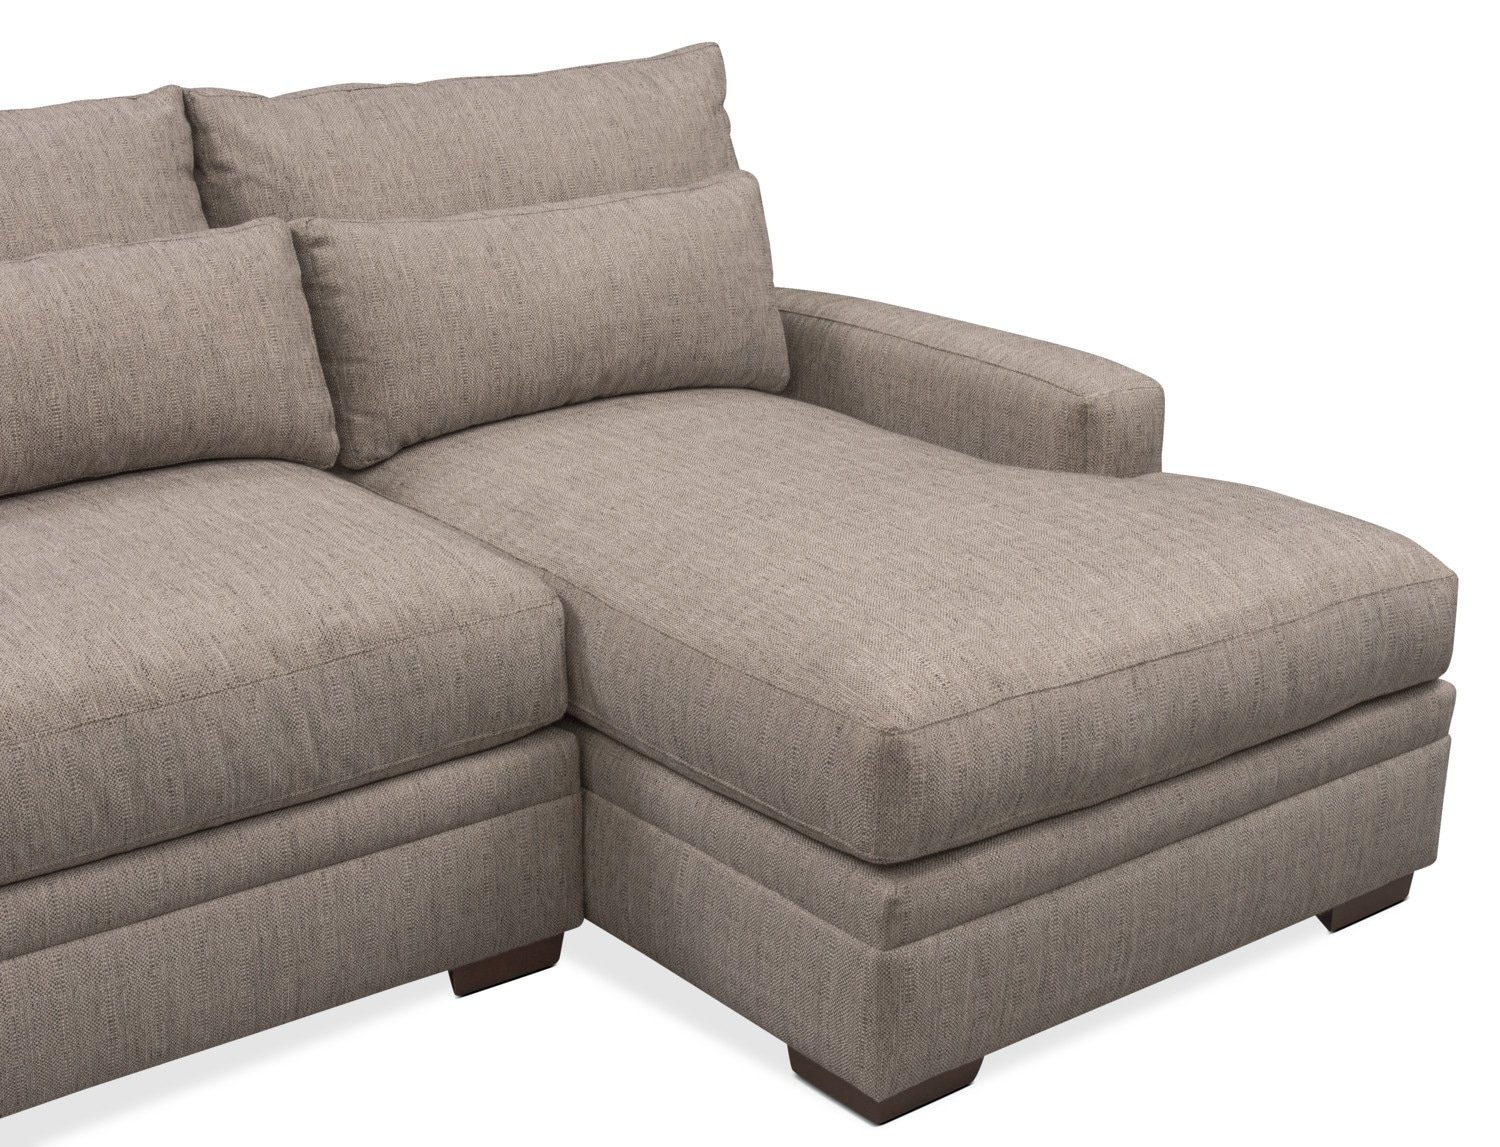 Vcf Sofa Chaise | Baci Living Room Pertaining To Mcdade Graphite 2 Piece Sectionals With Laf Chaise (View 21 of 25)